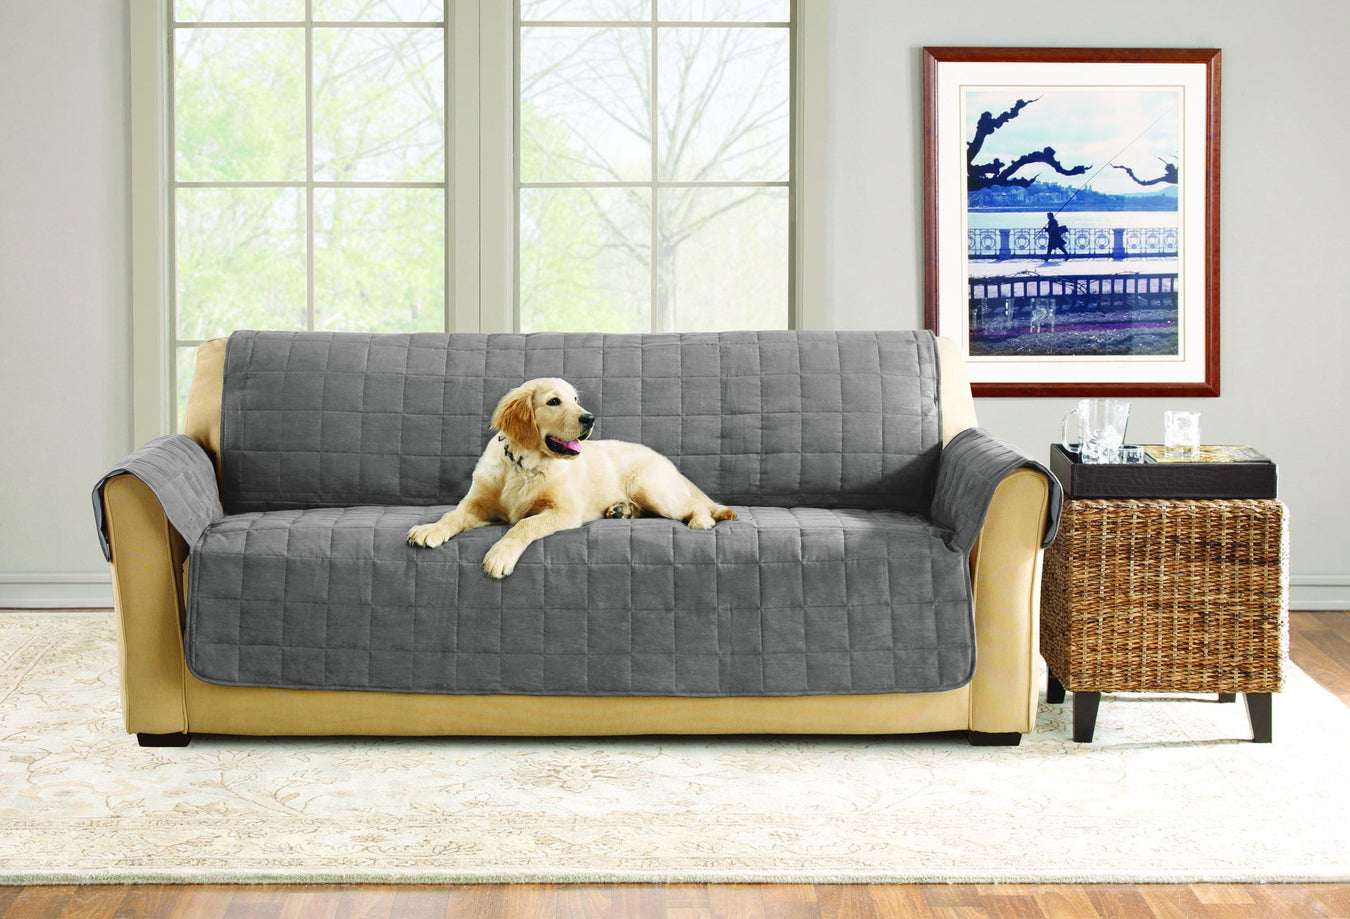 Magnificent Comfort Memory Foam With Paw Print Sofa Furniture Cover Andrewgaddart Wooden Chair Designs For Living Room Andrewgaddartcom